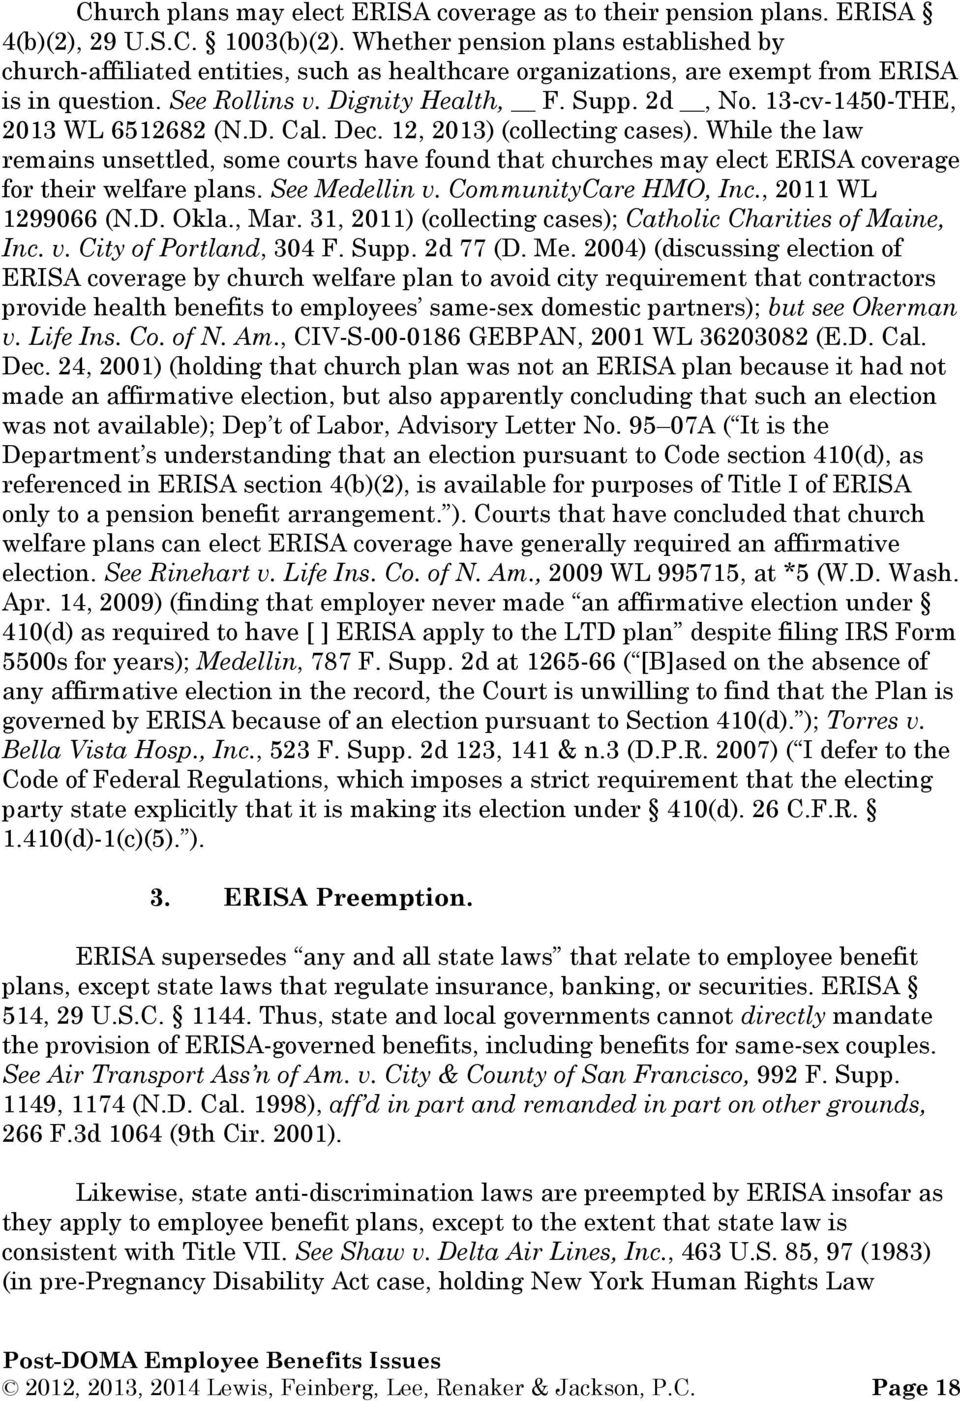 13-cv-1450-THE, 2013 WL 6512682 (N.D. Cal. Dec. 12, 2013) (collecting cases). While the law remains unsettled, some courts have found that churches may elect ERISA coverage for their welfare plans.